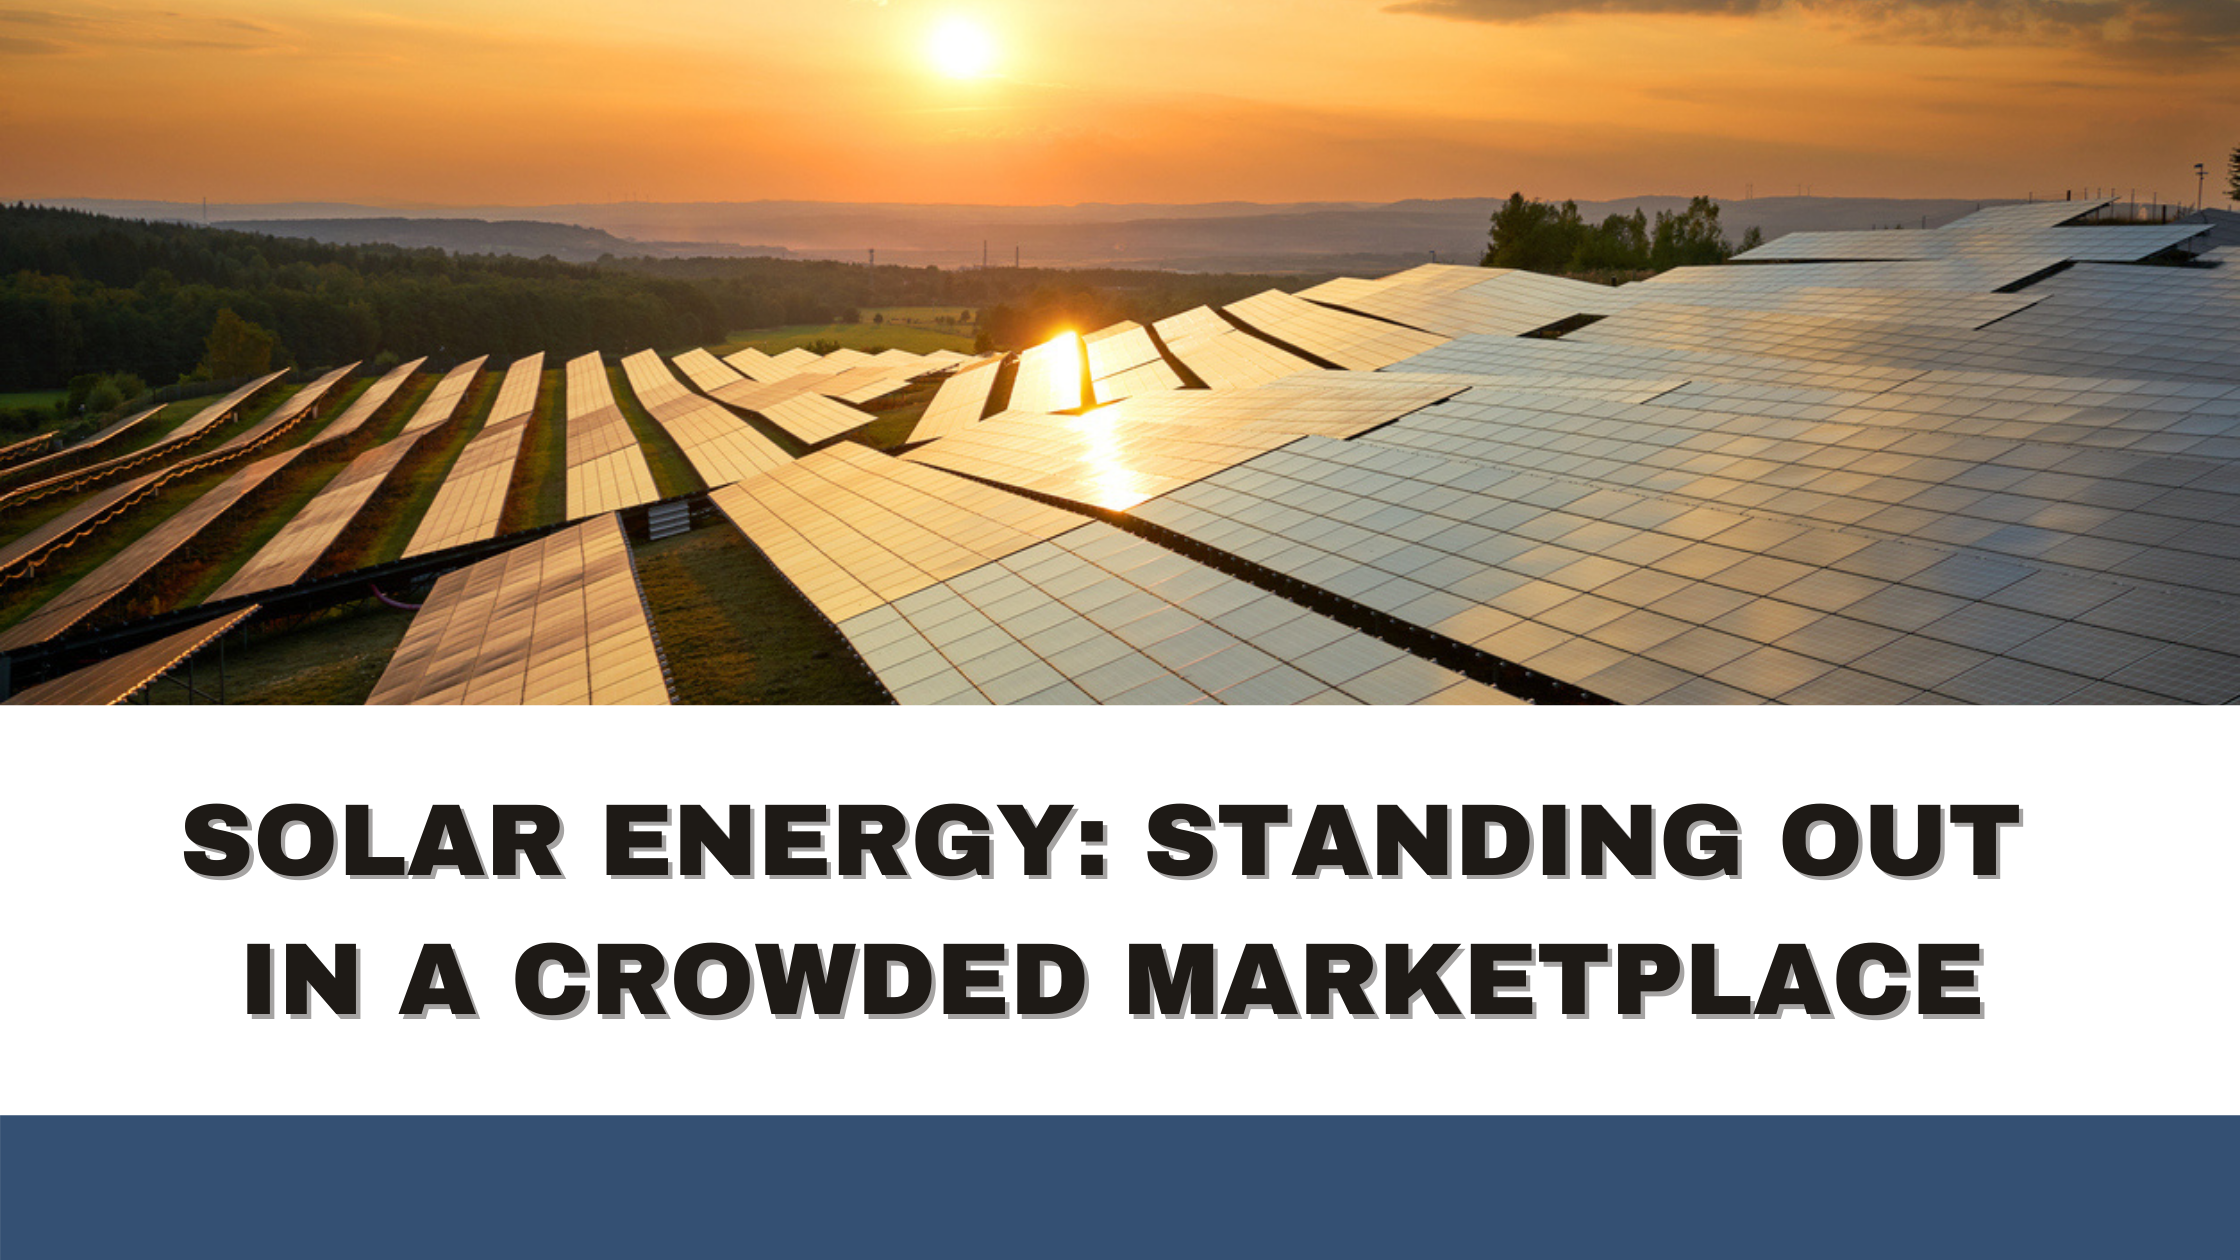 Solar Energy: Standing Out in a Crowded Marketplace